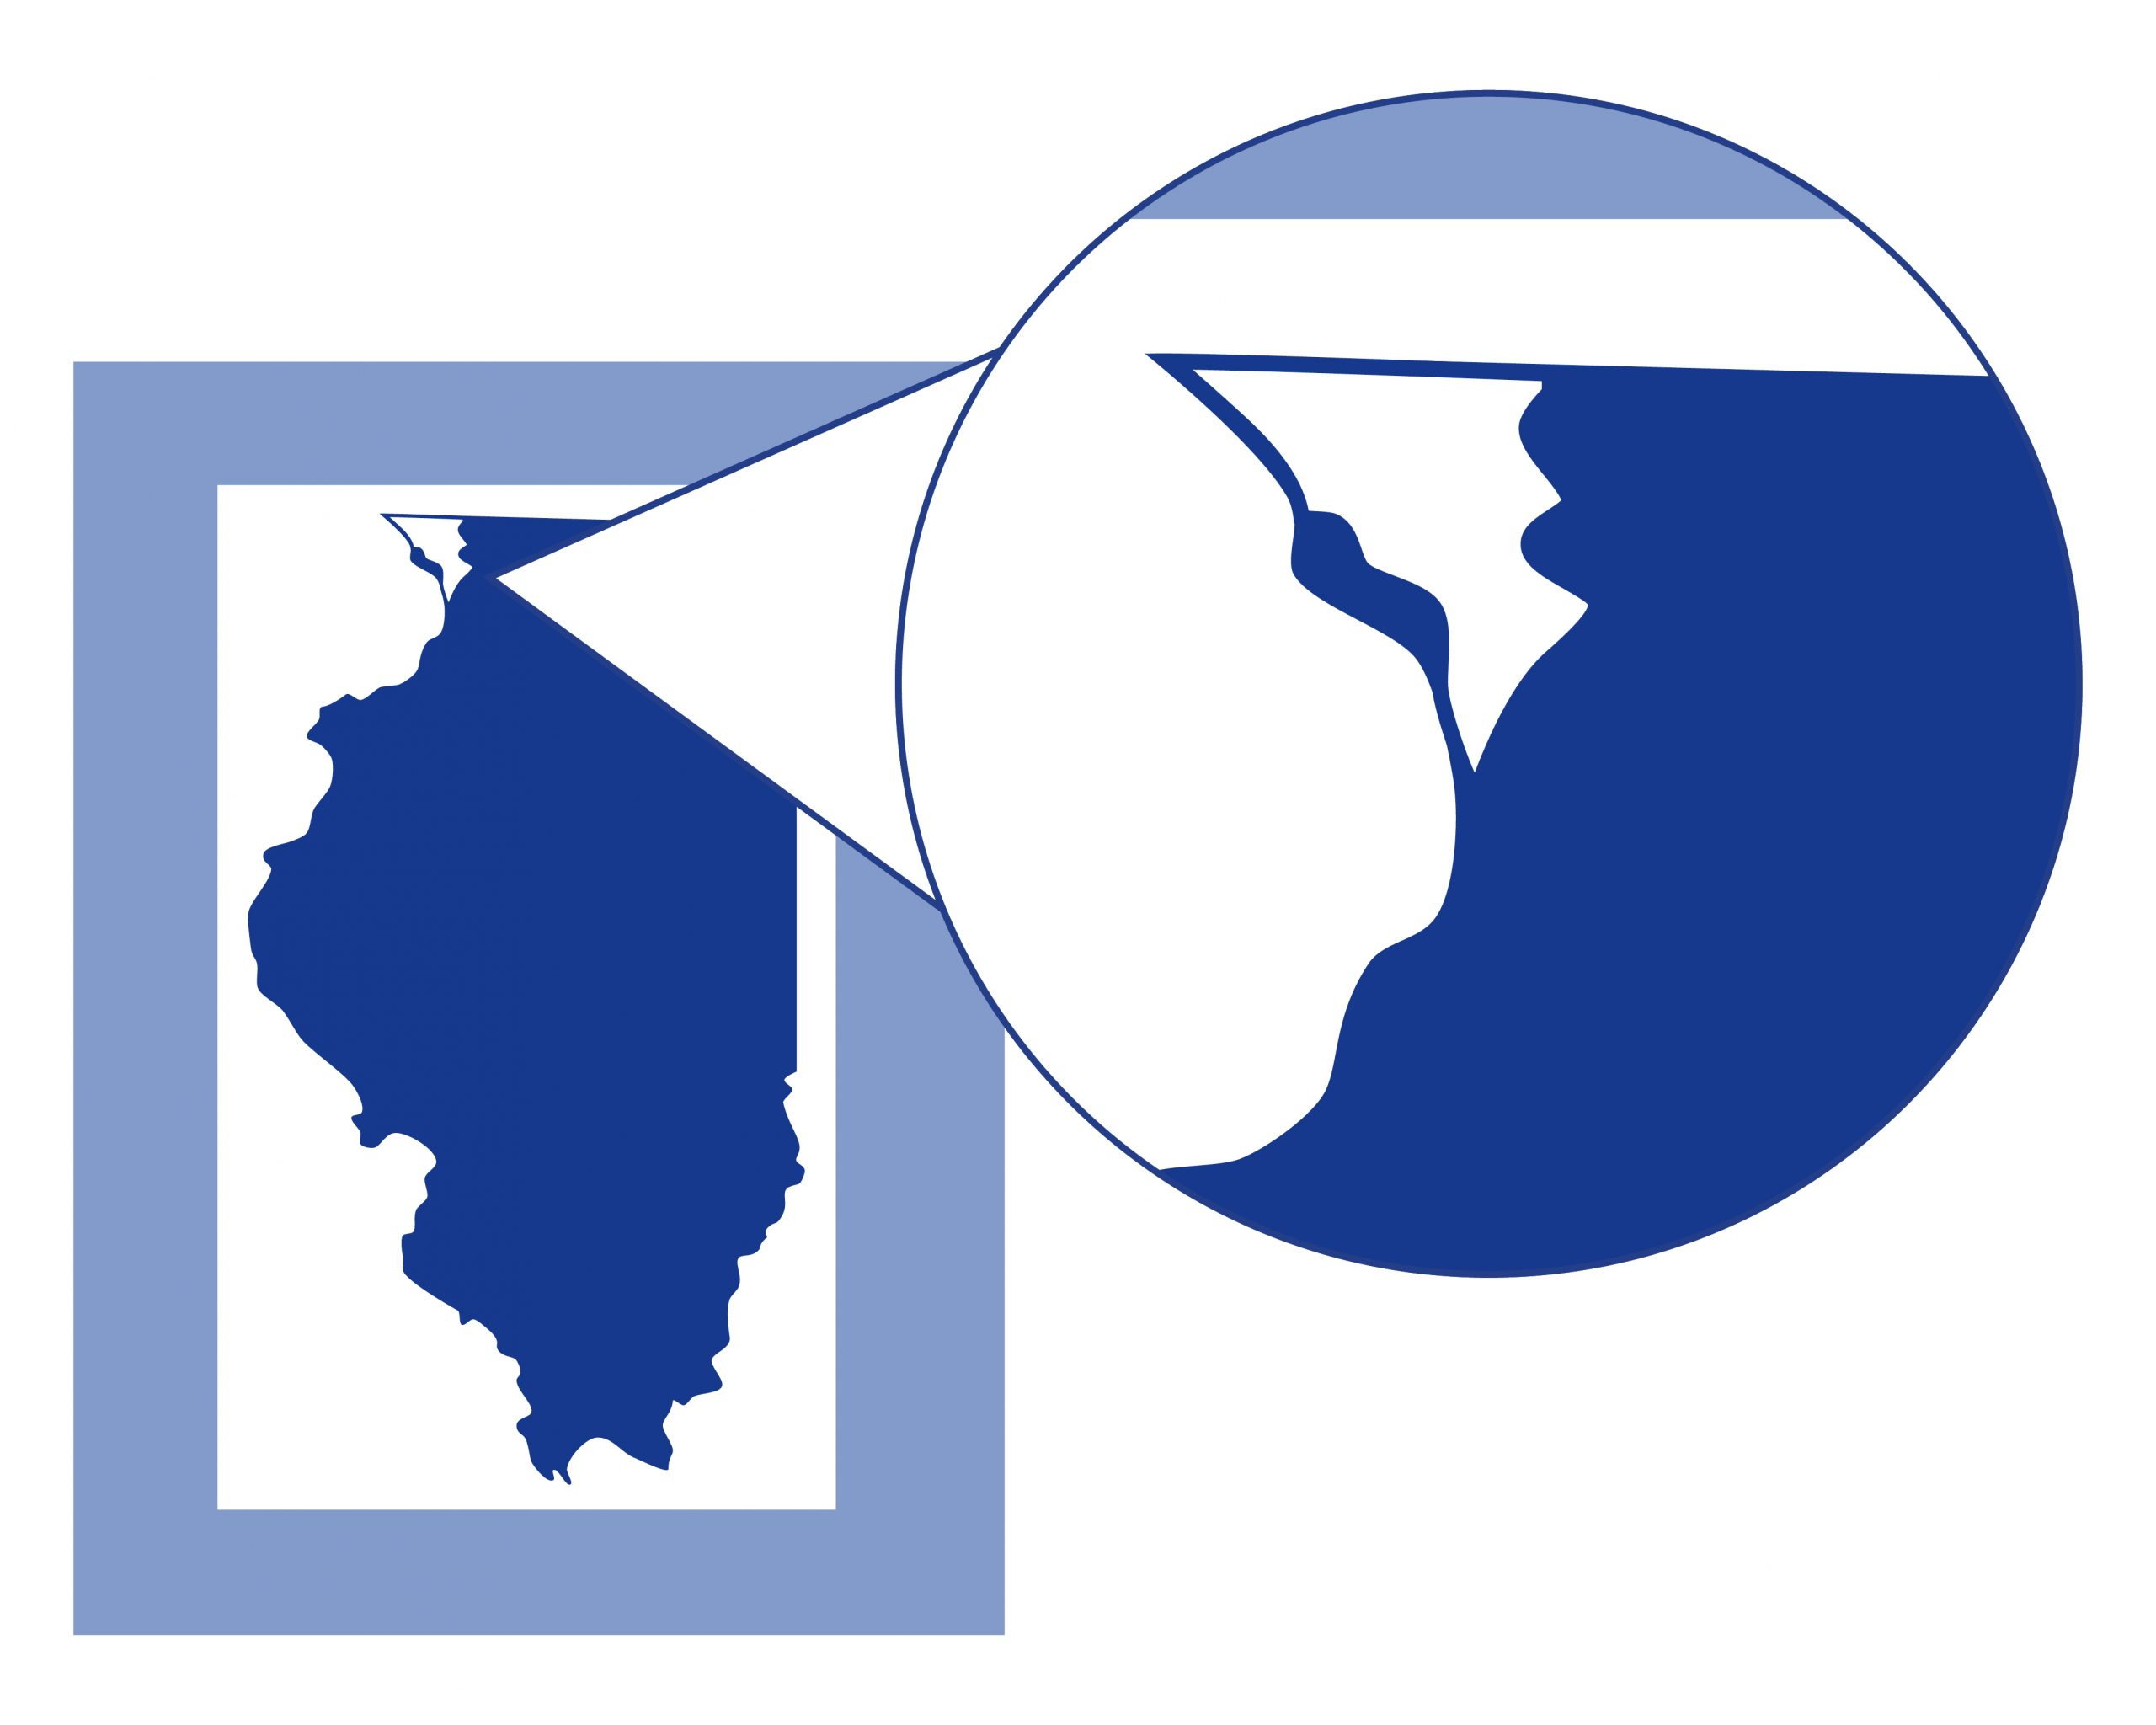 A blue map of Illinois with a white area indicating the north west section of the driftless area.